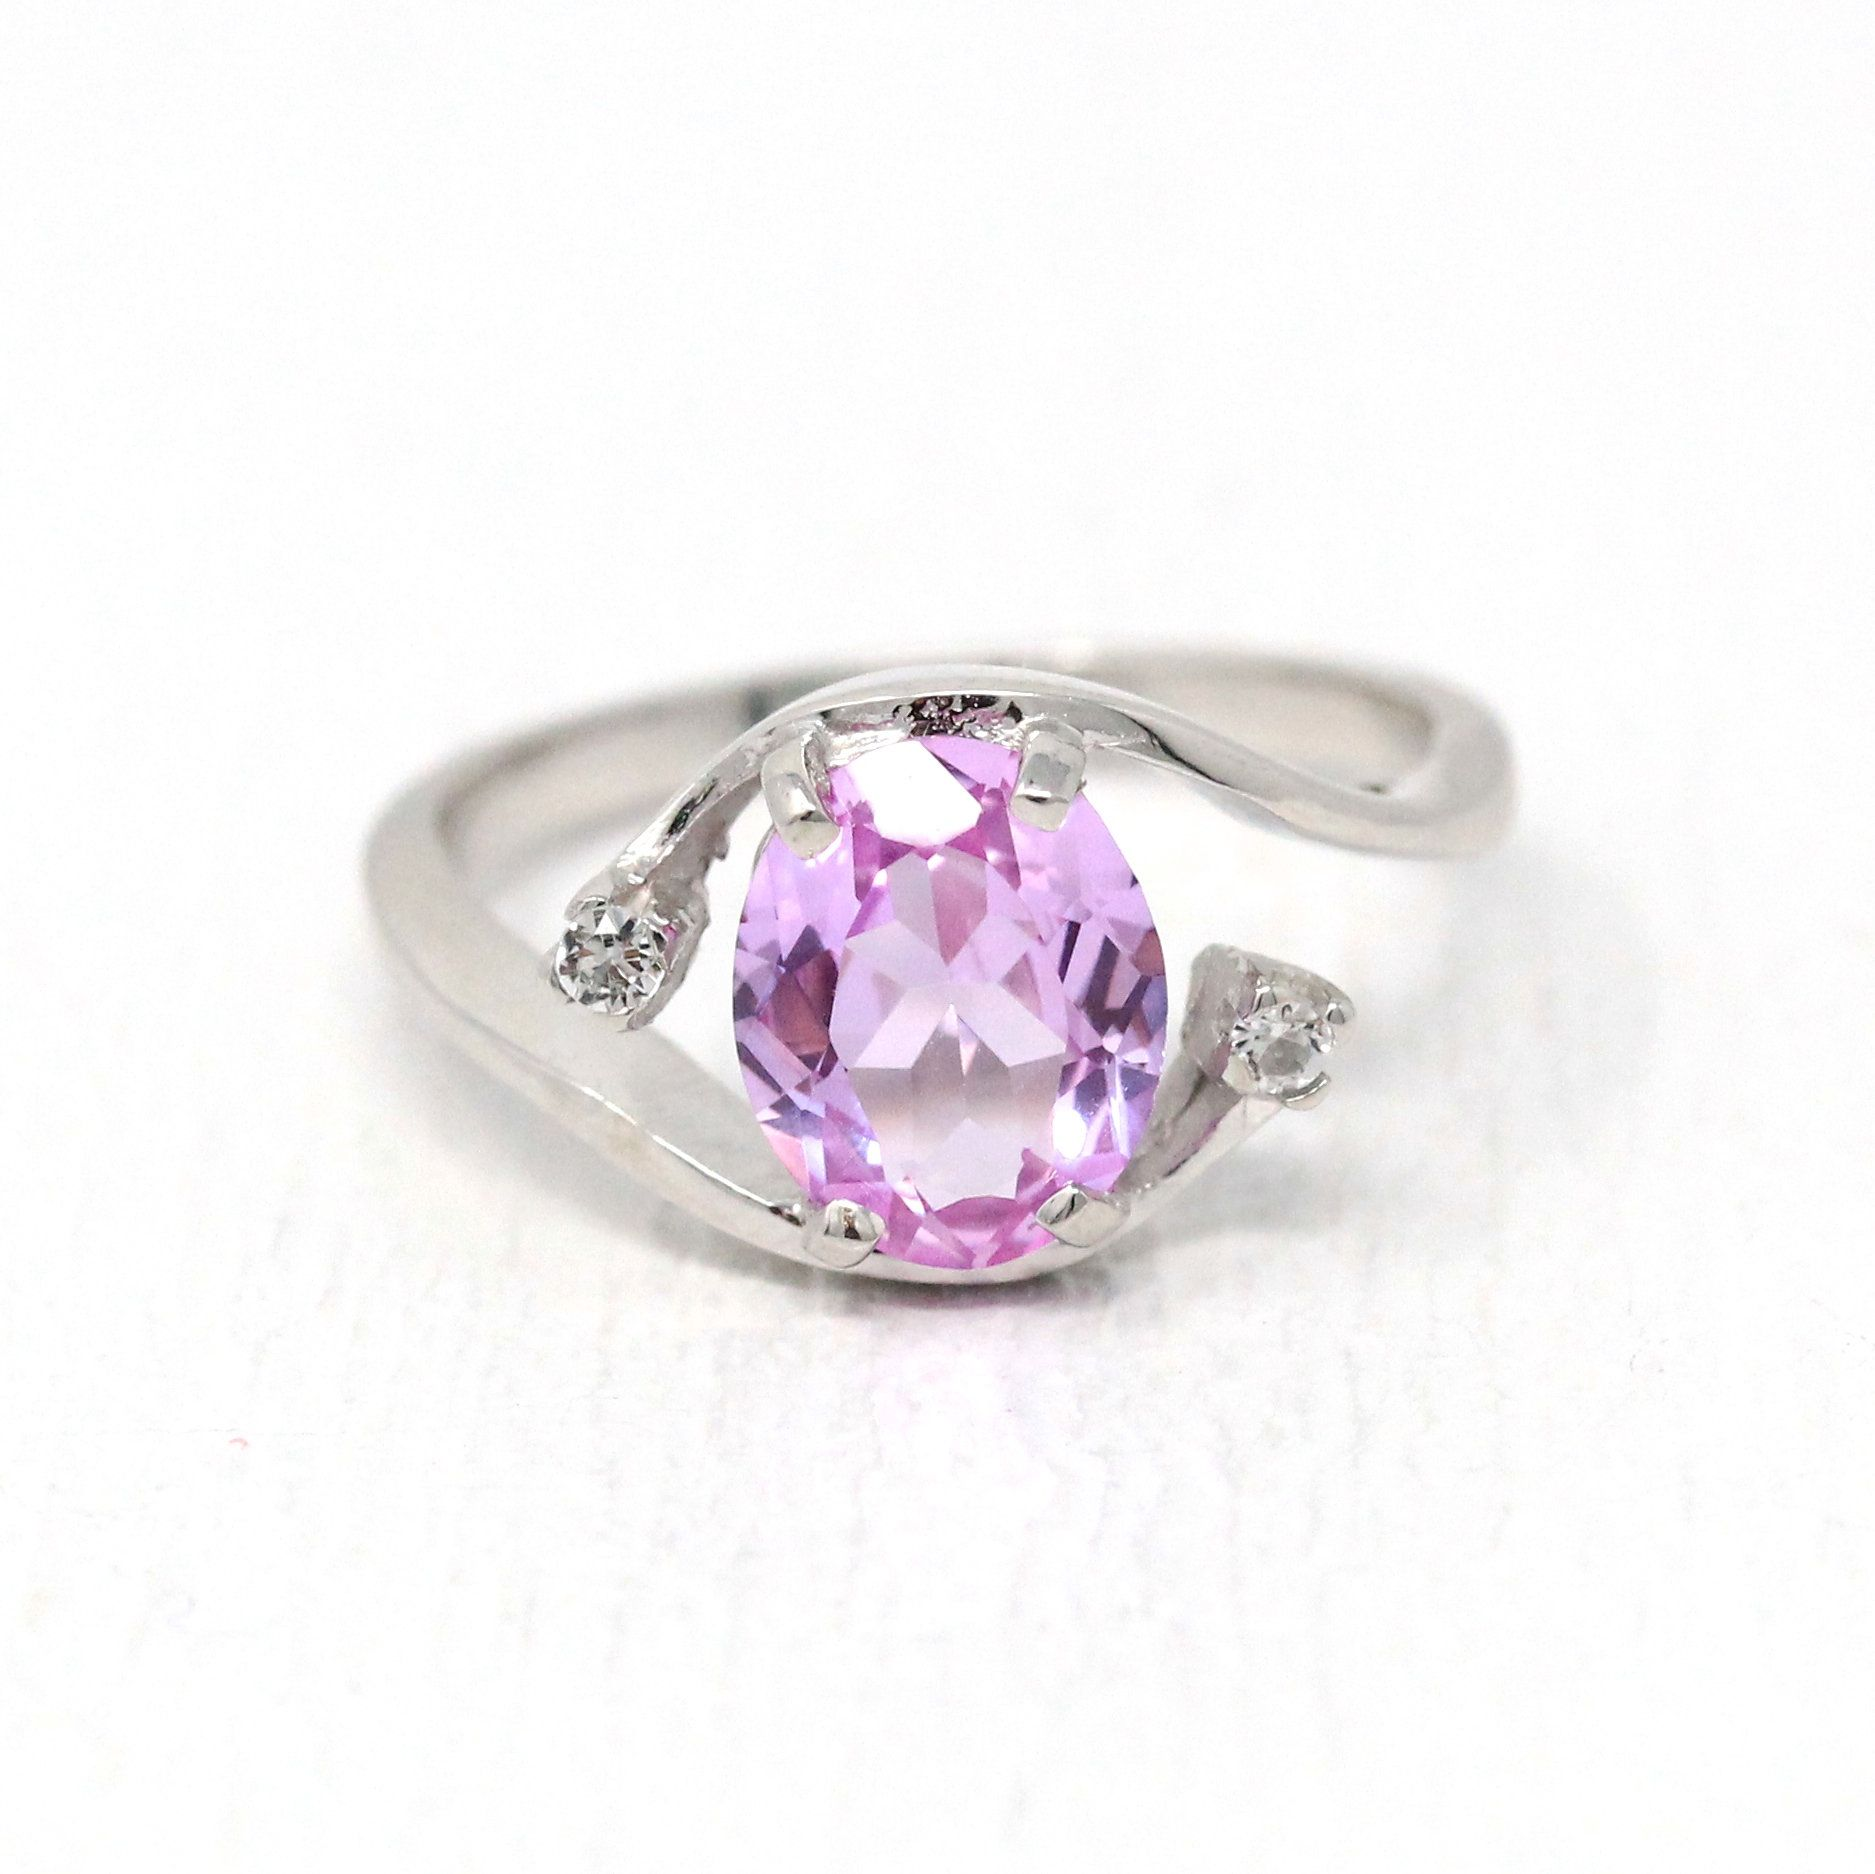 Created Pink Sapphire Ring Retro 10k White Gold Oval 1 84 Ct Etsy In 2020 Pink Sapphire Ring Pink Sapphire Retro Ring